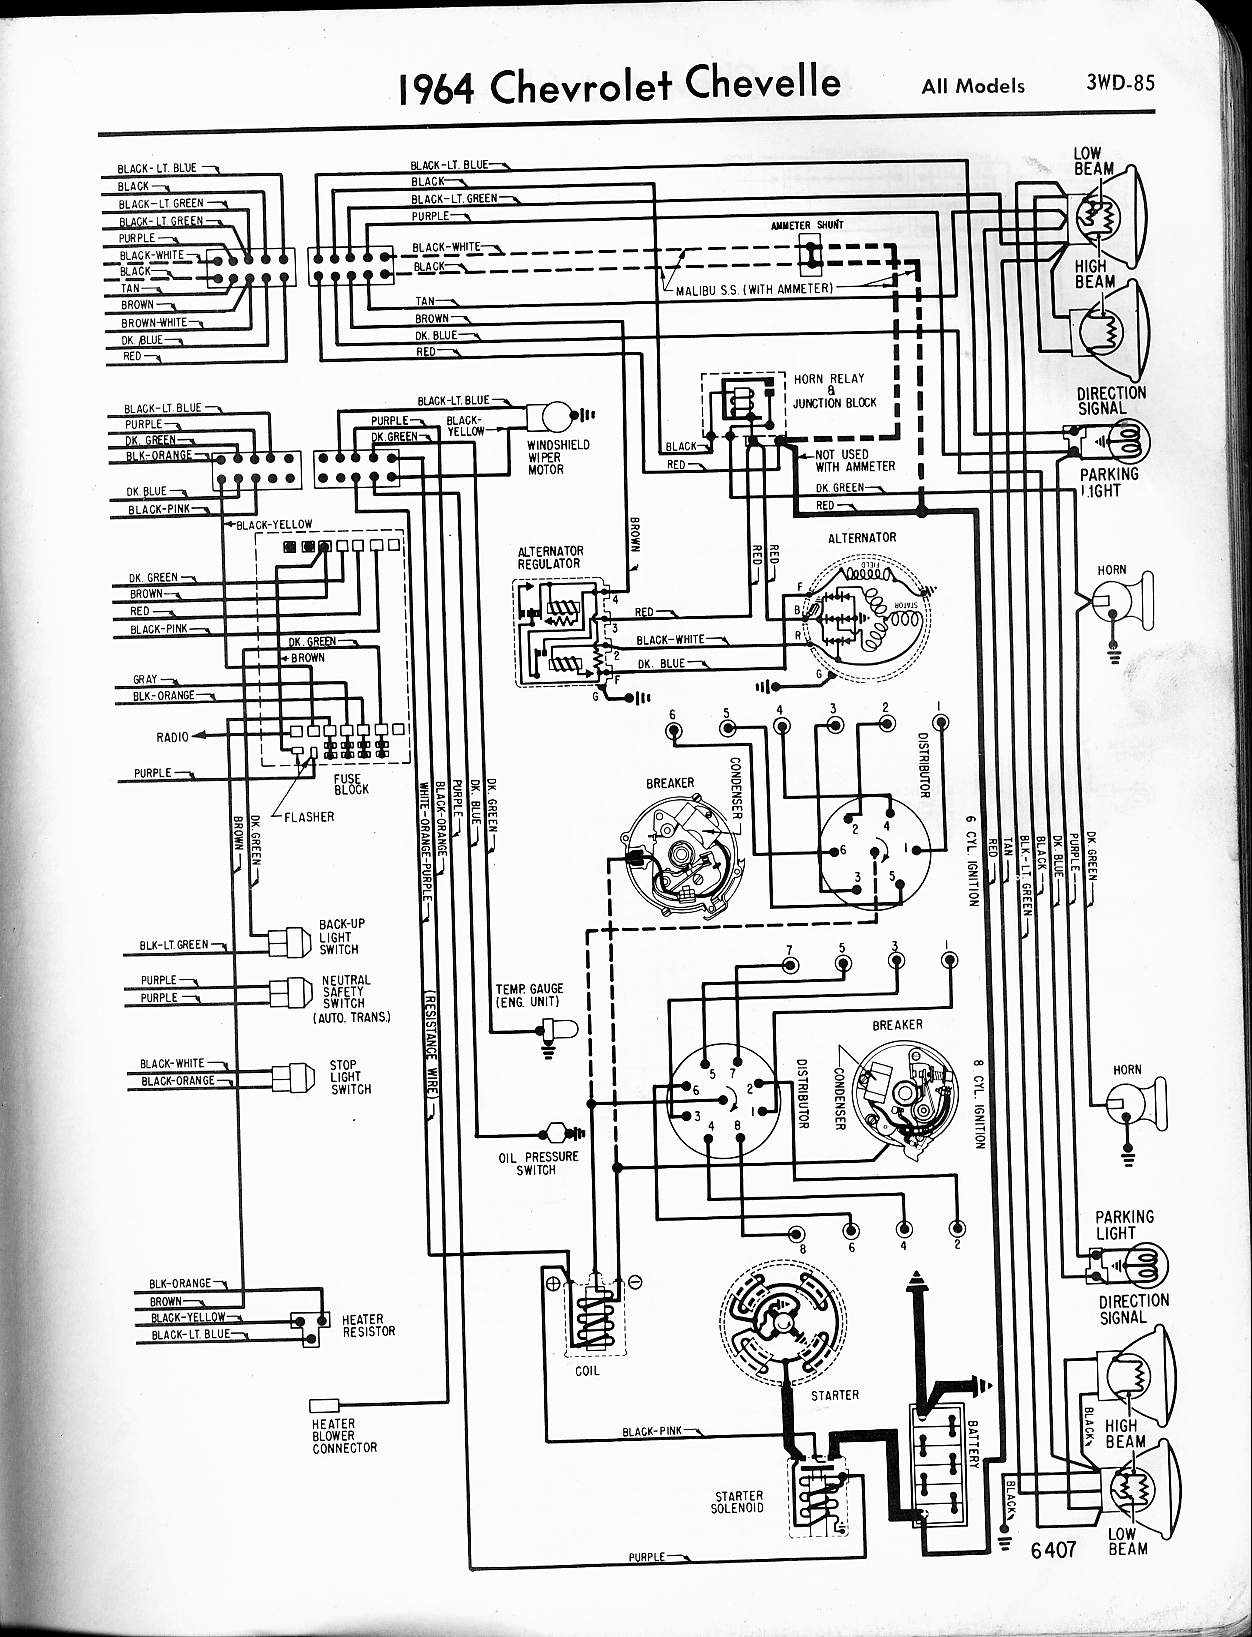 Chevy Diagrams Chevrolet Wiring 1964 Chevelle Diagram Figure A B